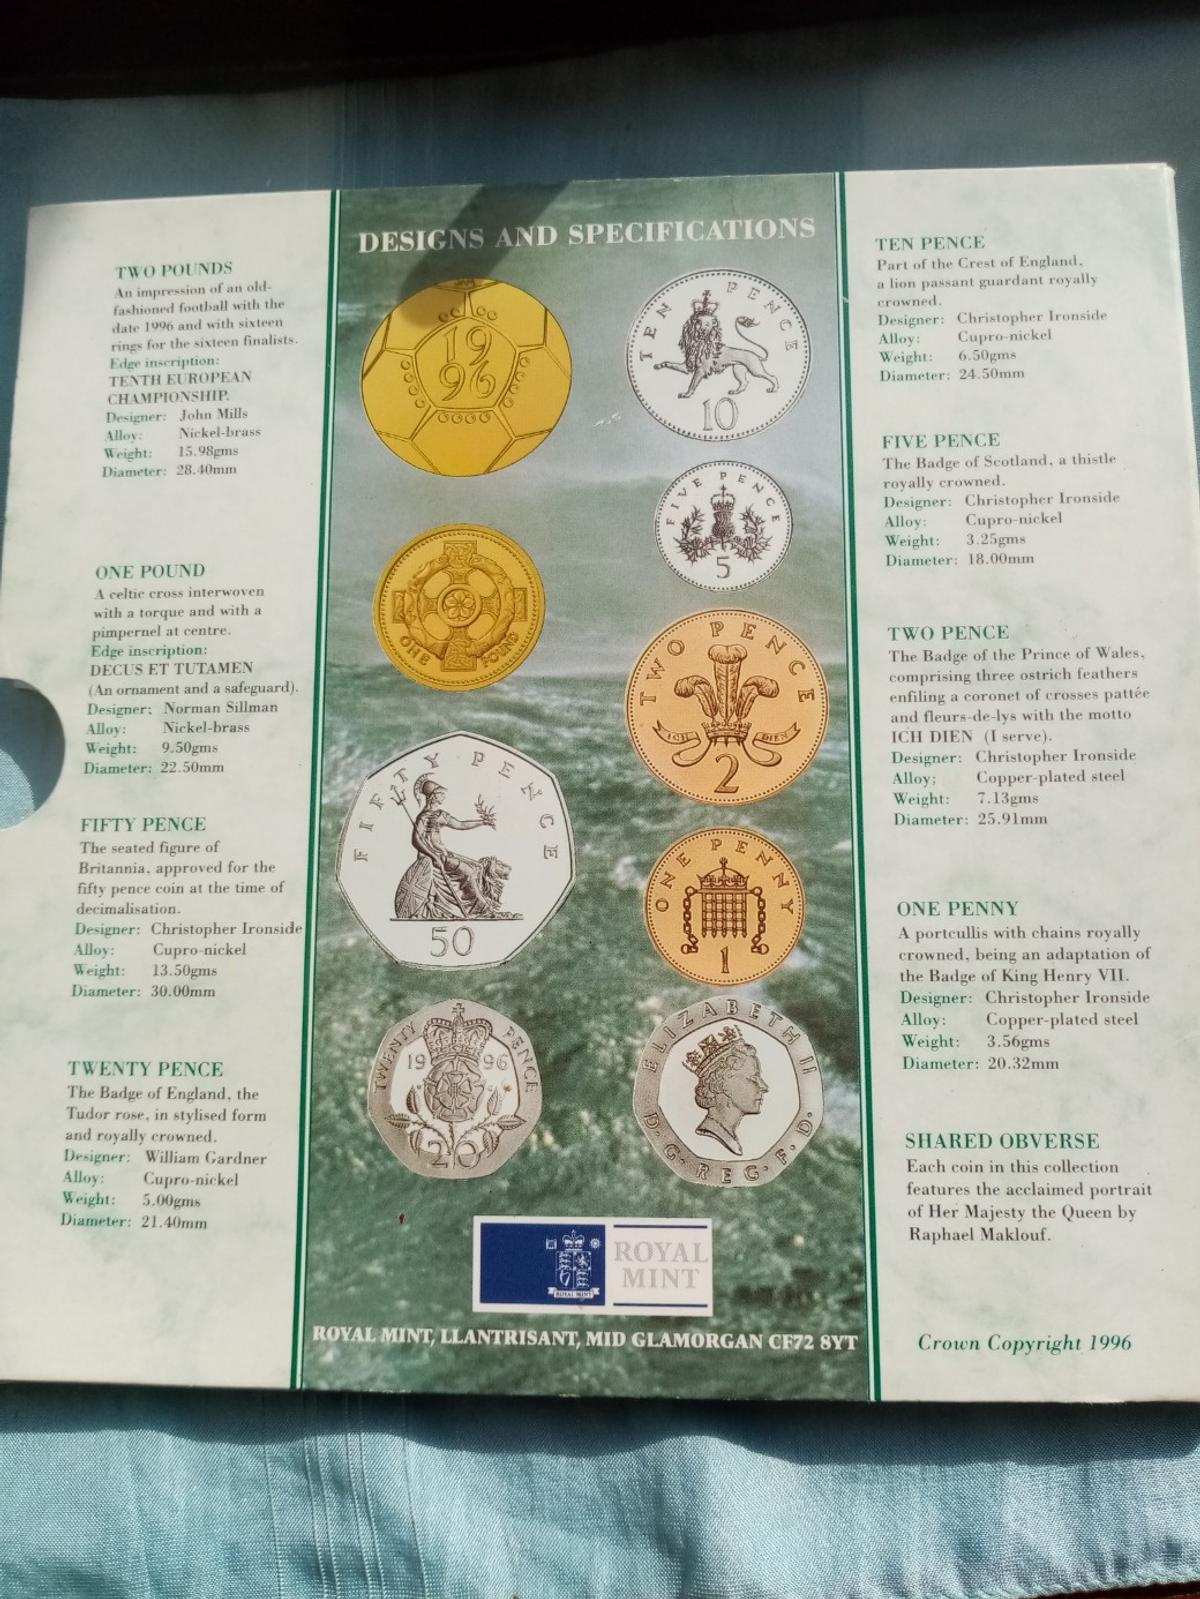 A beautiful unc royal mint 1996 coin collection in sealed packaging in brilliant uncirculated condition and never been out the packaging. Postage will be added at £2 and its first class signed for.